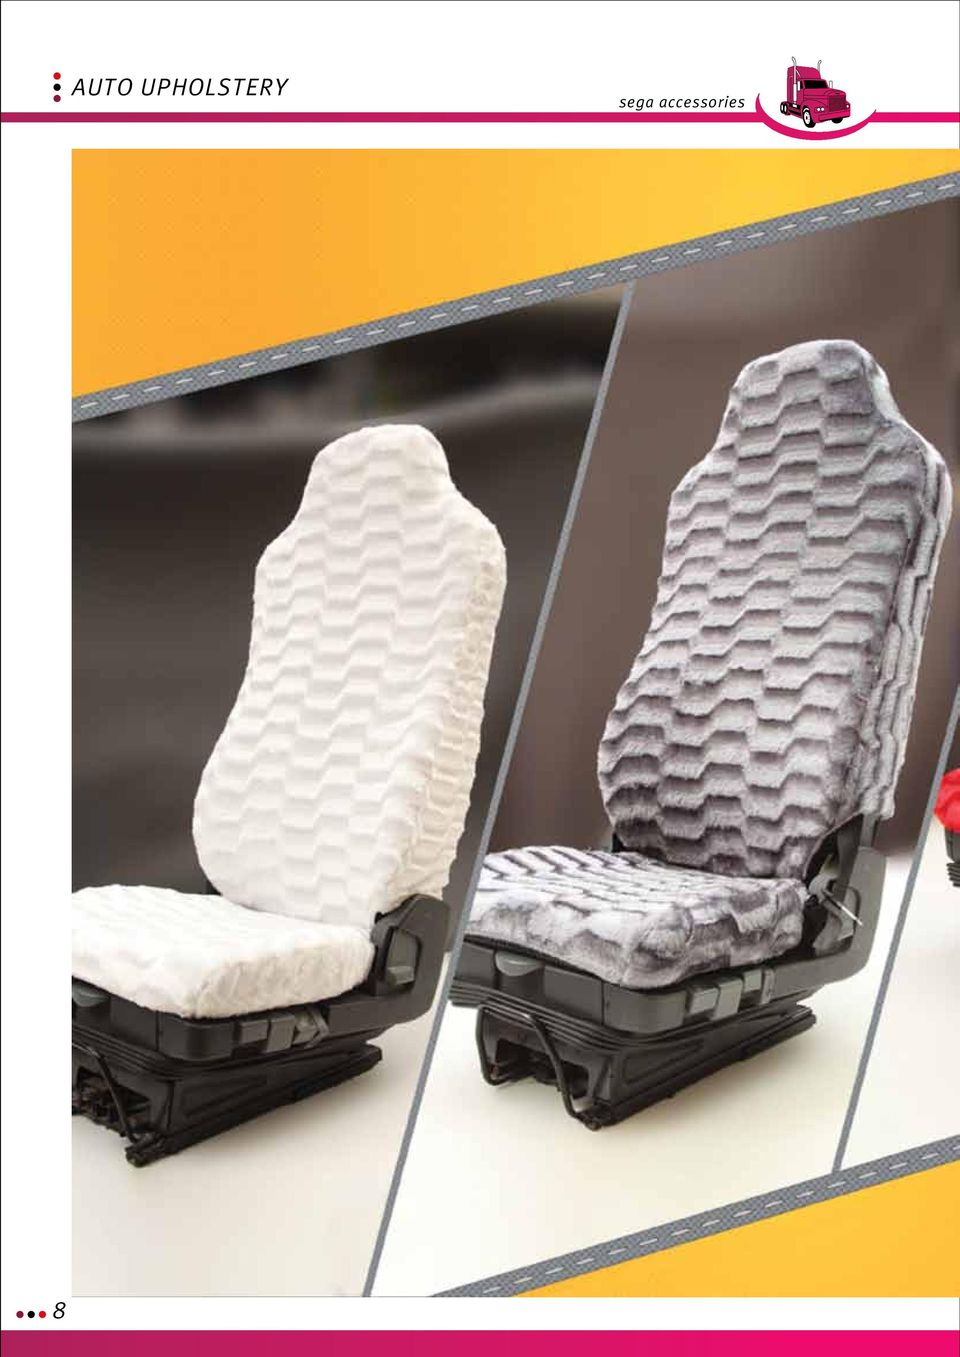 Auto Upholstery Sega Accessories Seat Covers Normal Sheath